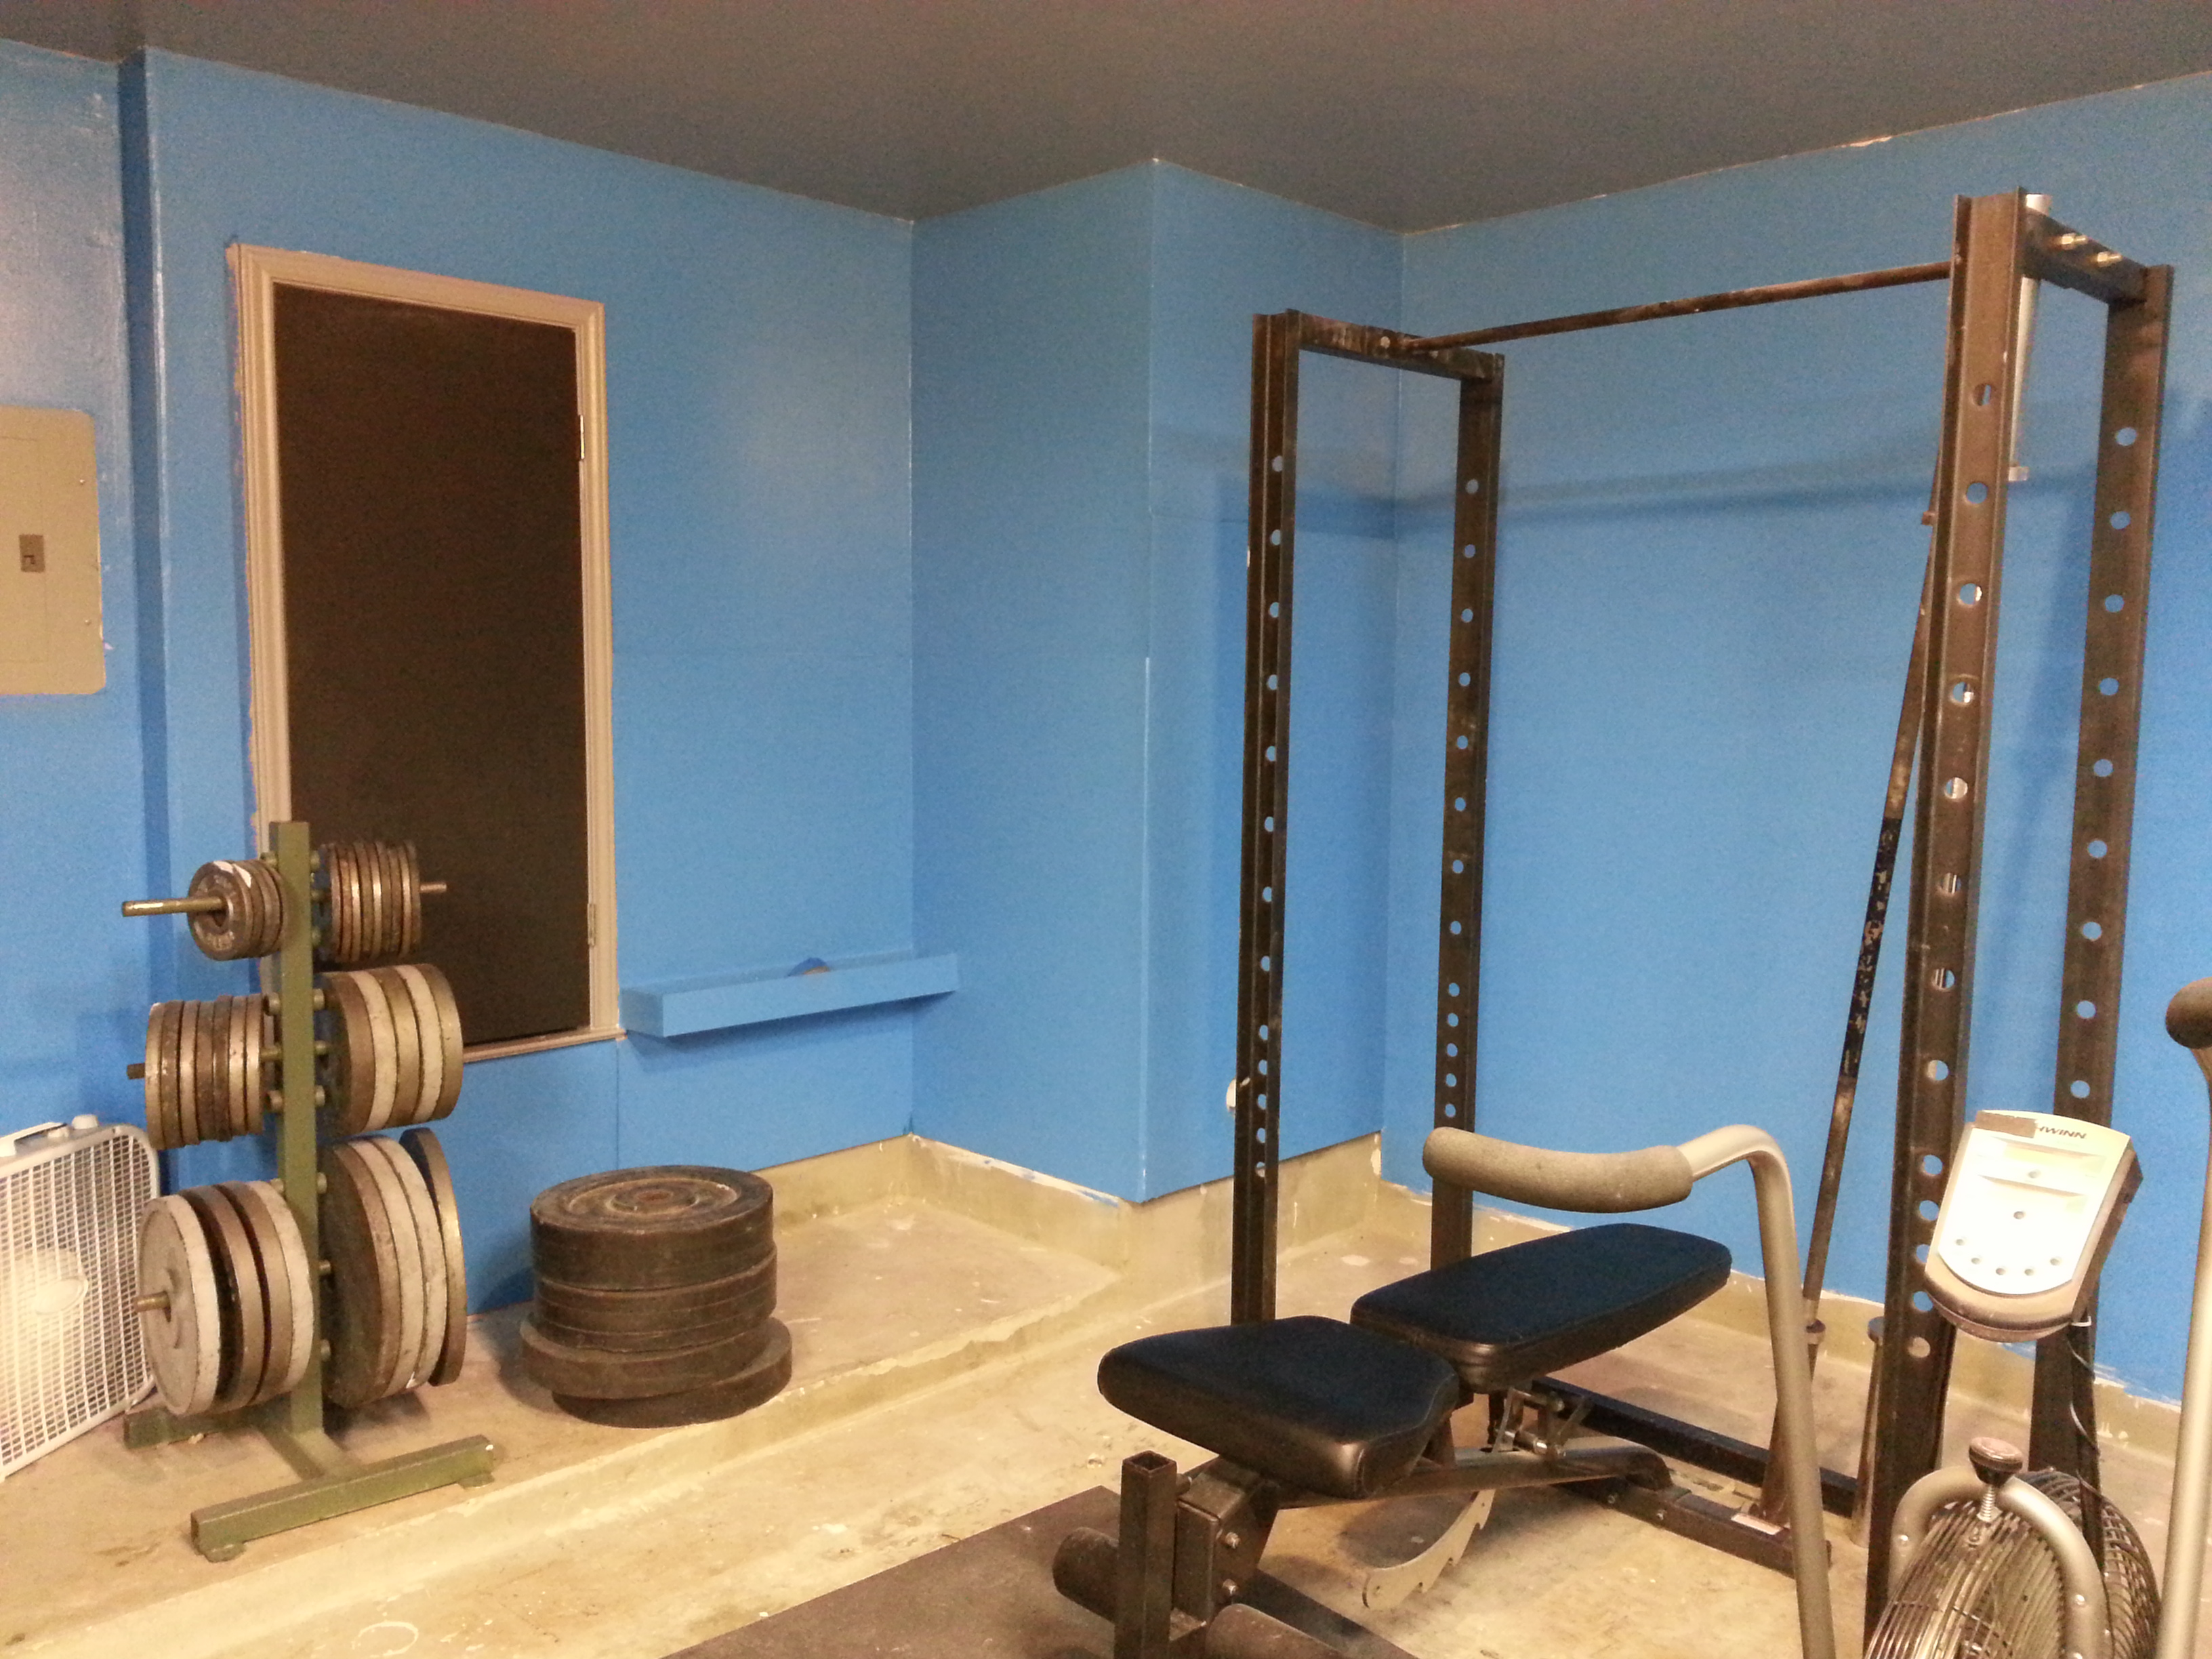 My 1st powerlifting meet home gym & bhc boot camp updates